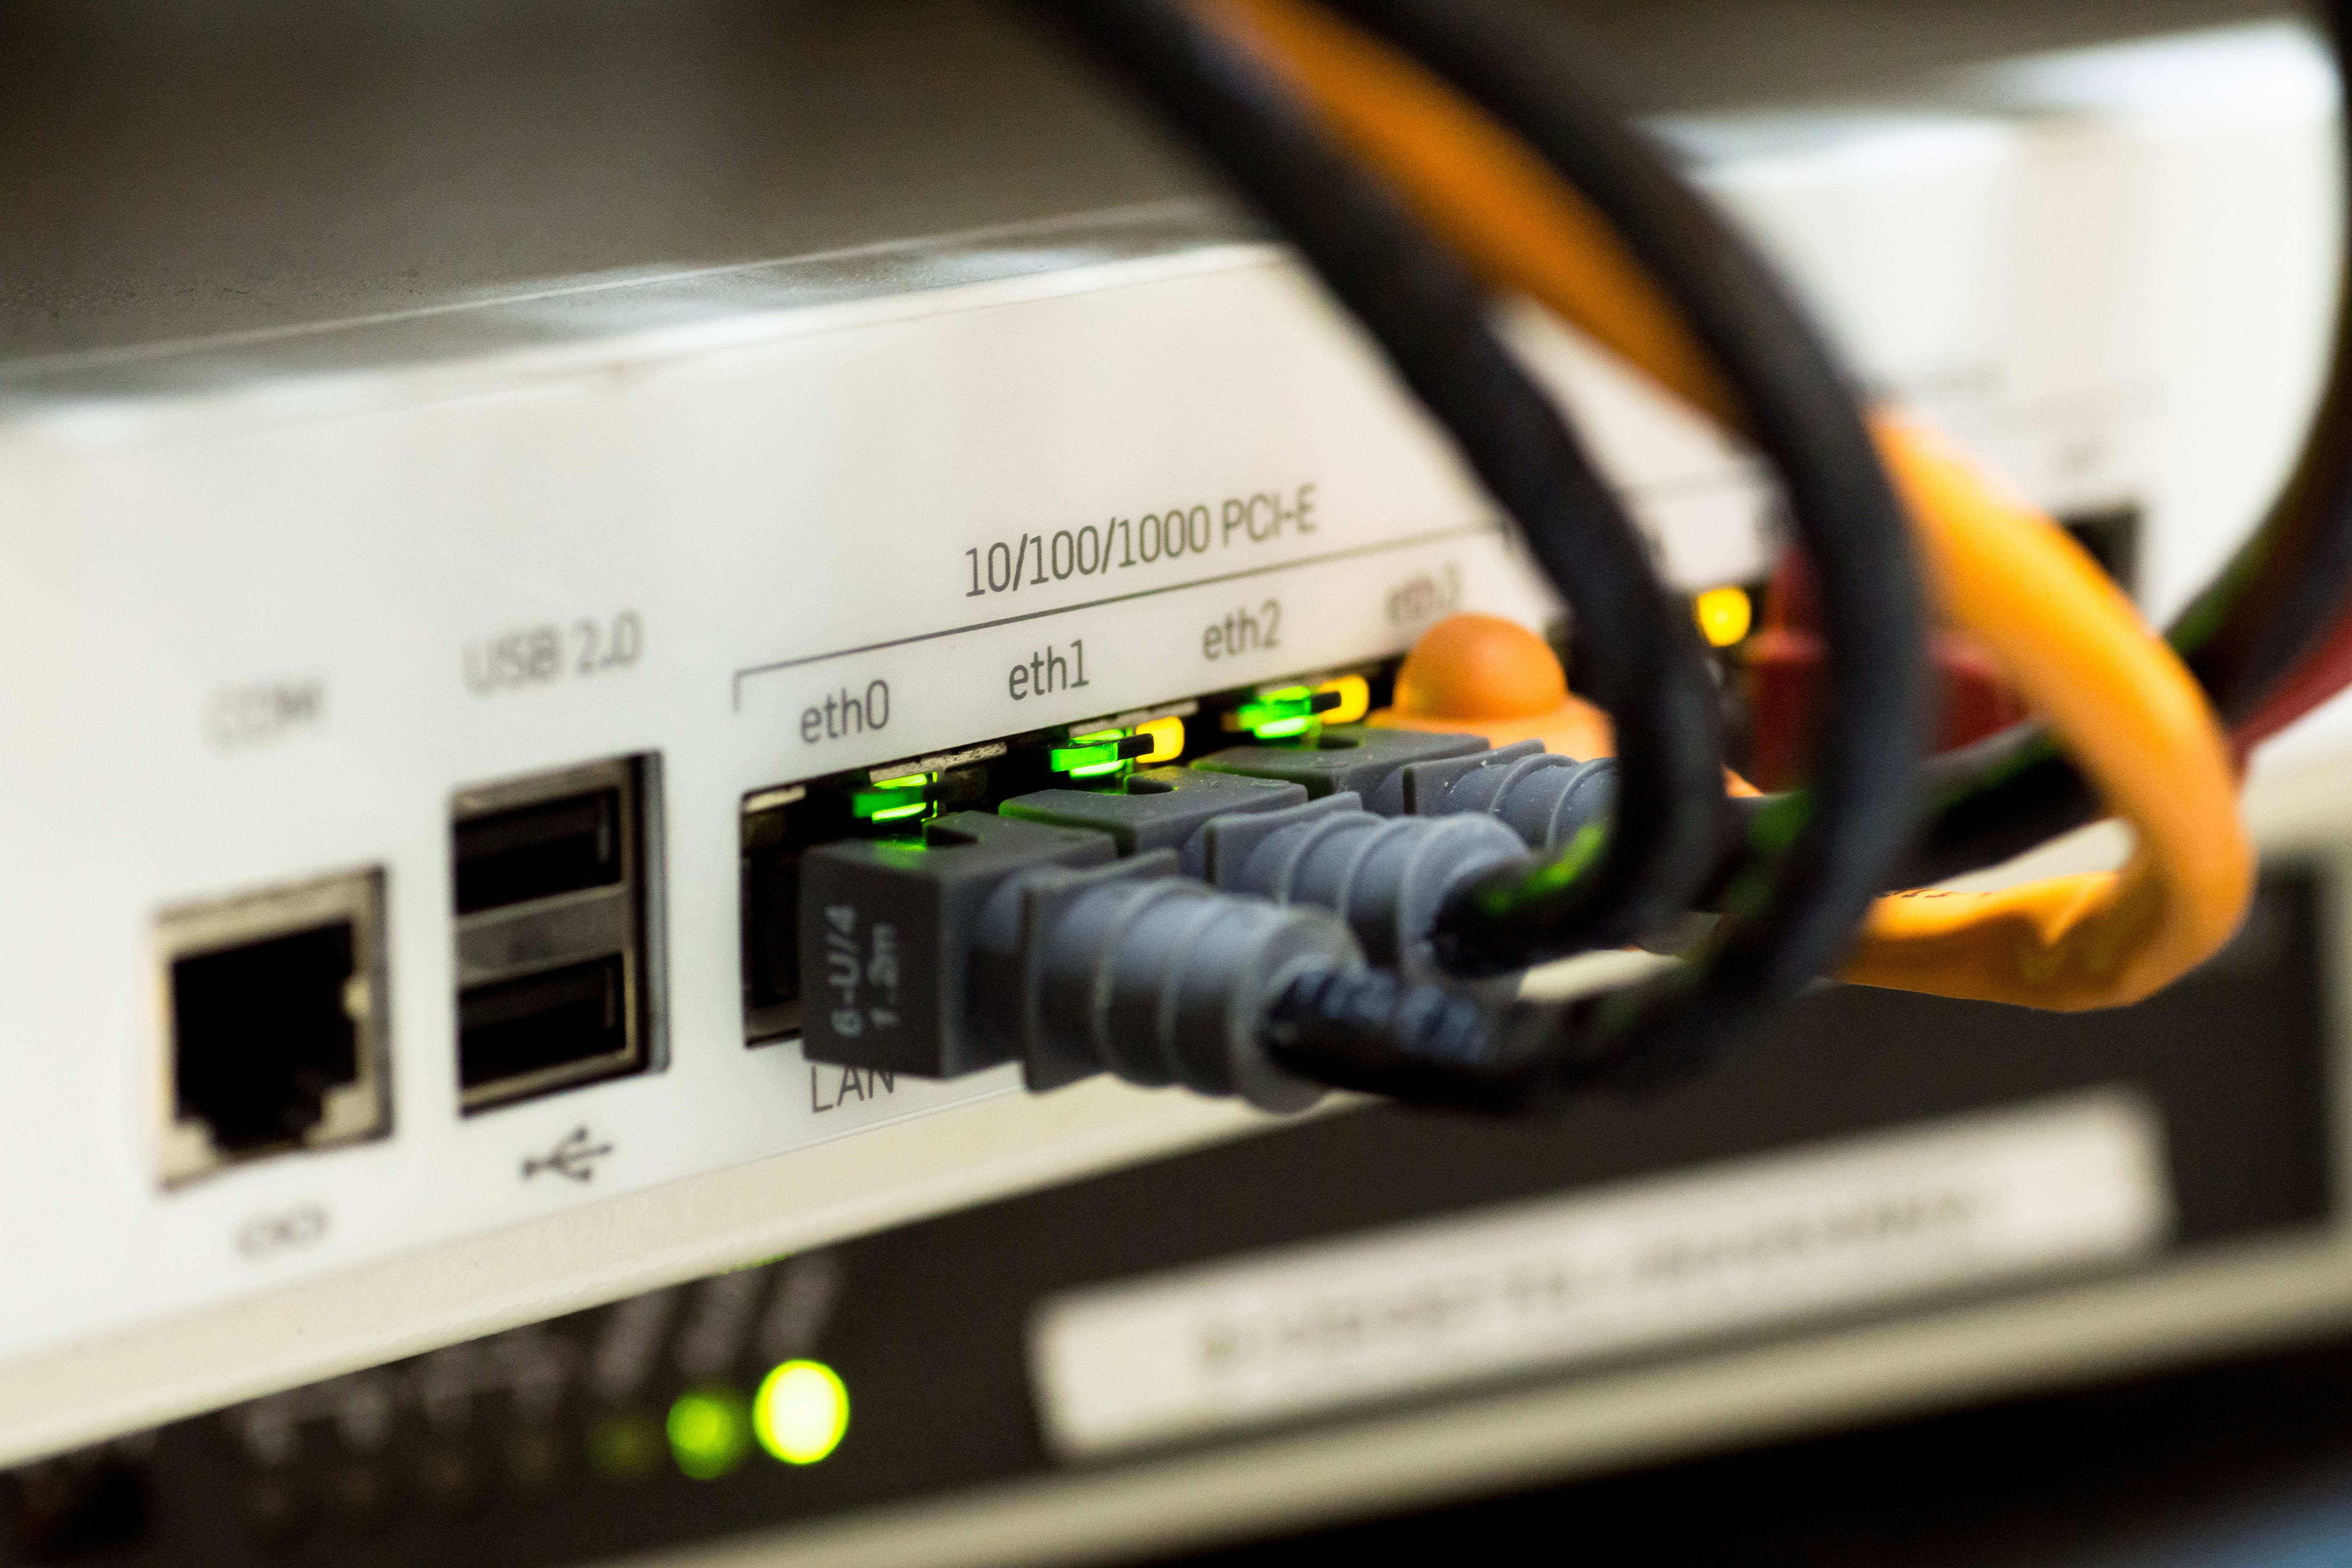 Industrial Ethernet network troubleshooting